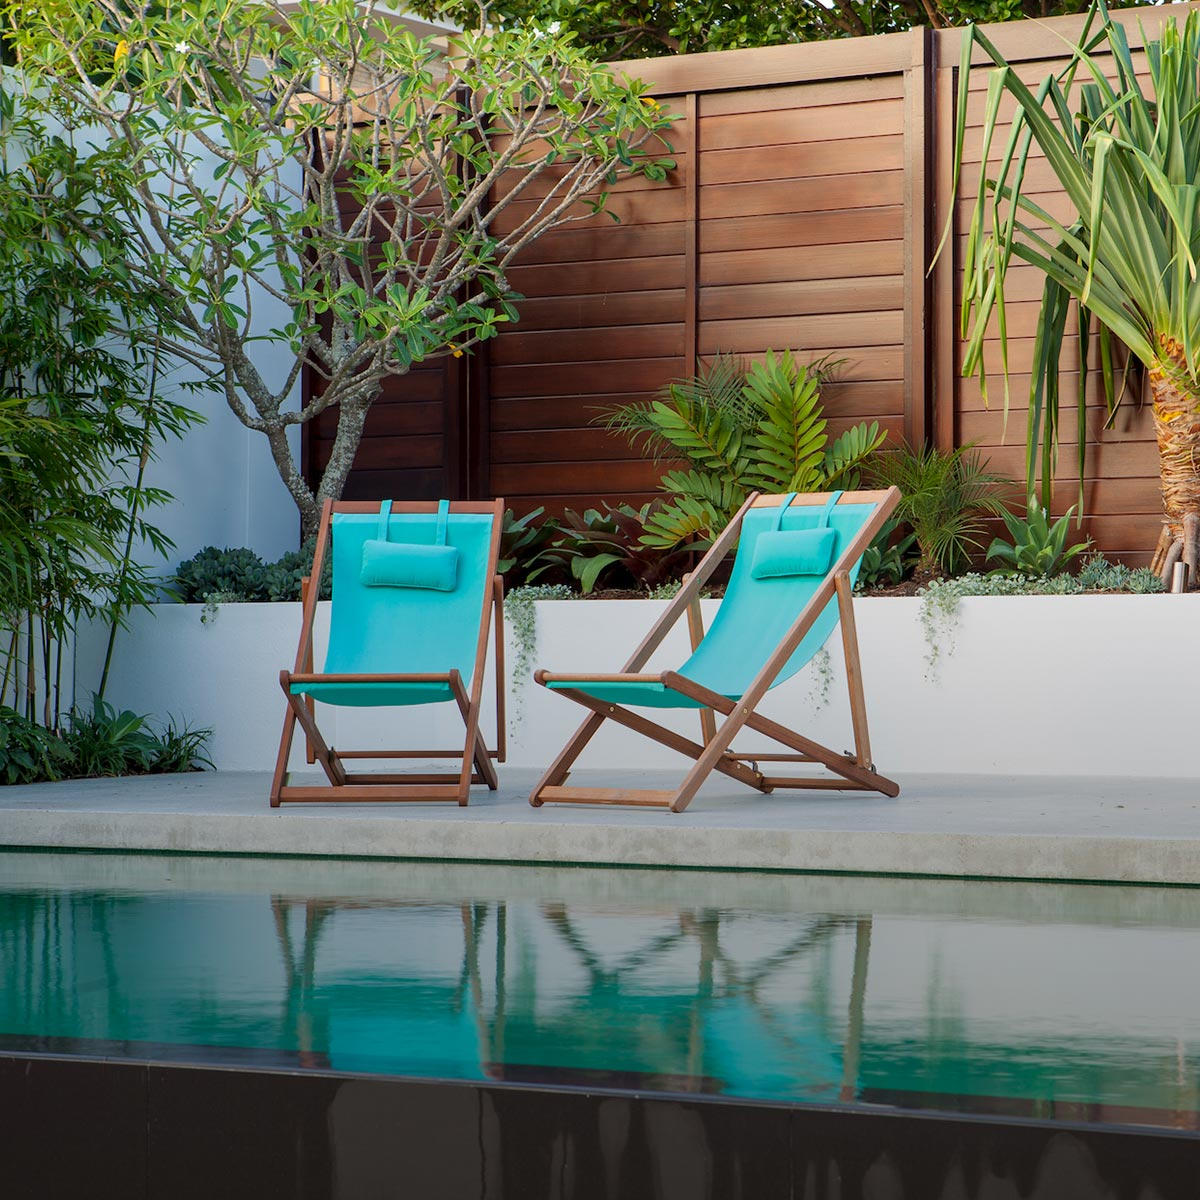 Birchgrove landscaping and pool garden design by Bell Landscapes, Sydney